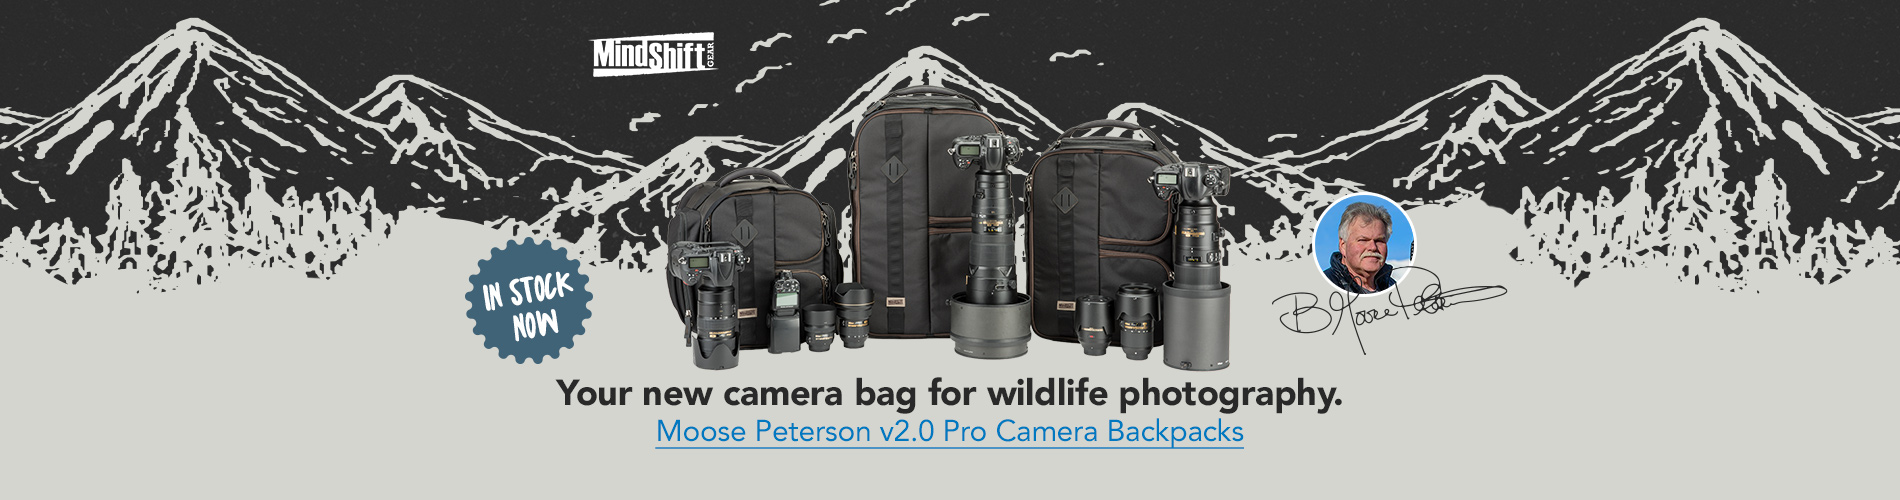 Your new camera bag for wildlife photography. Moose Peterson v2.0 Pro Camera Backpacks - In stock now! >>